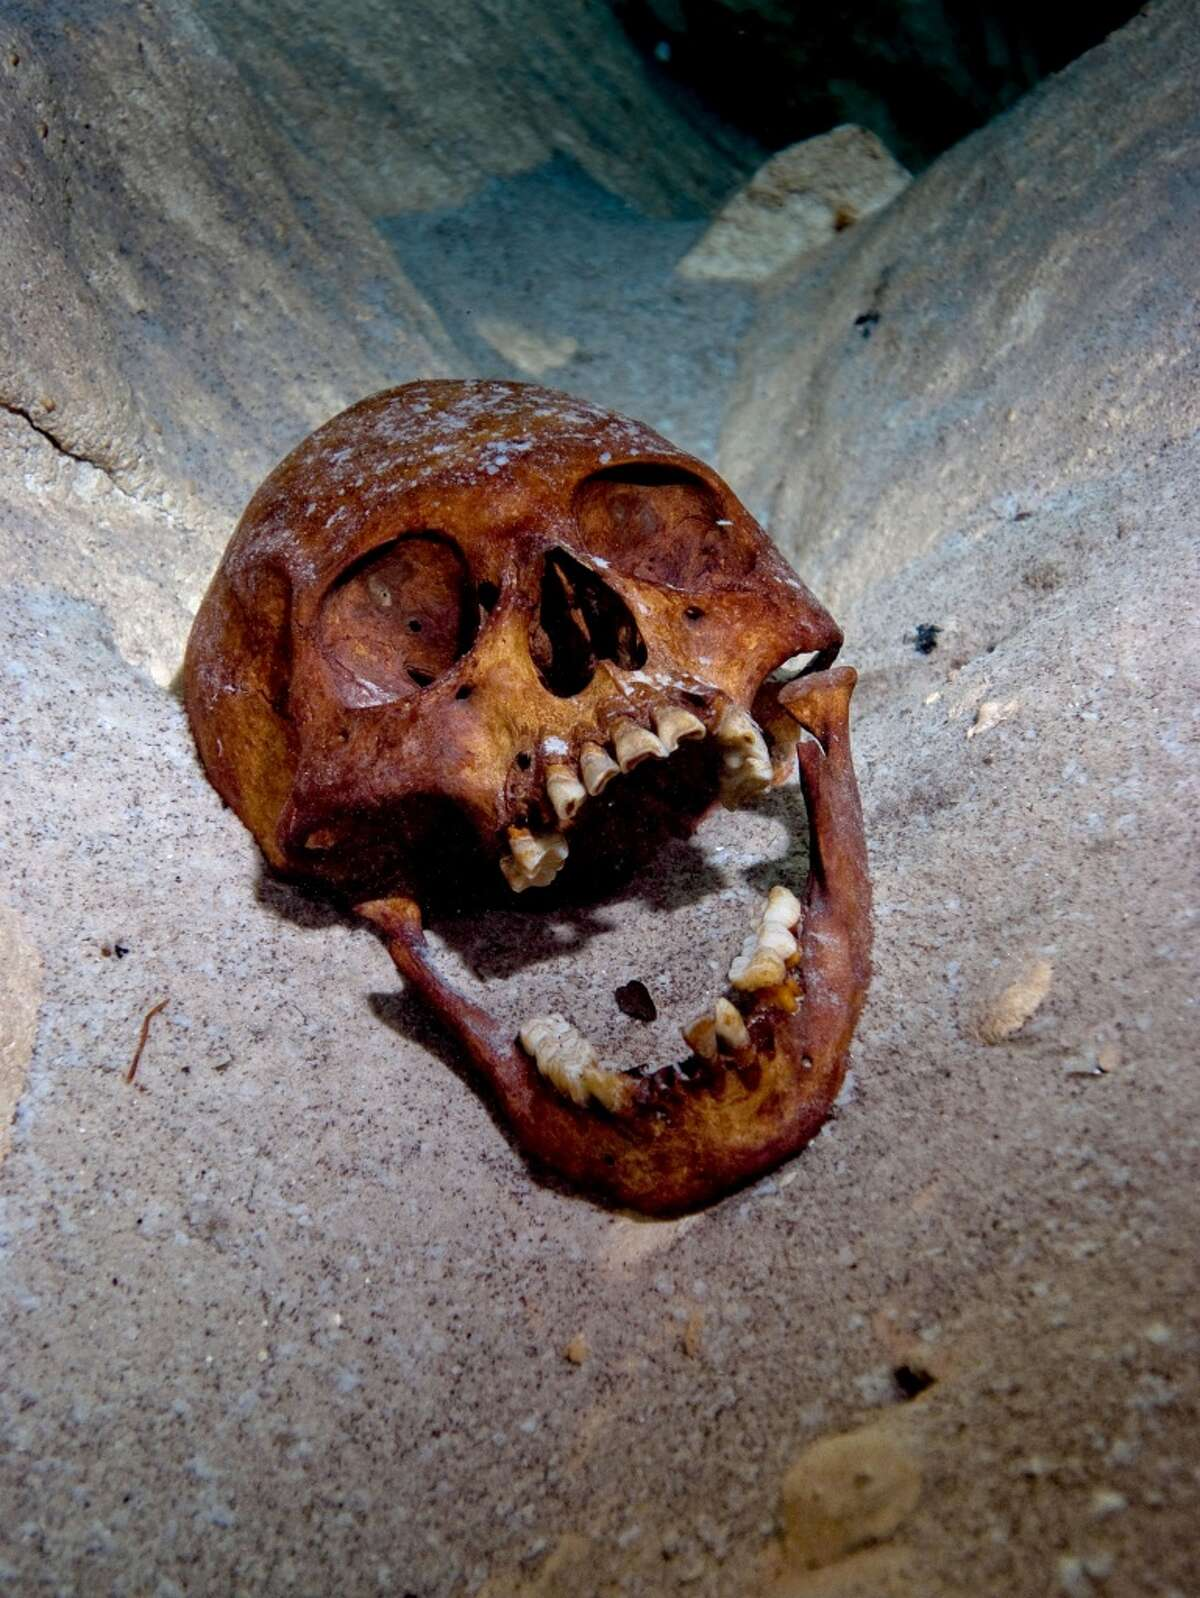 Piltdown Man In 1912, a man named Charles Dawson claimed to have unearthed the